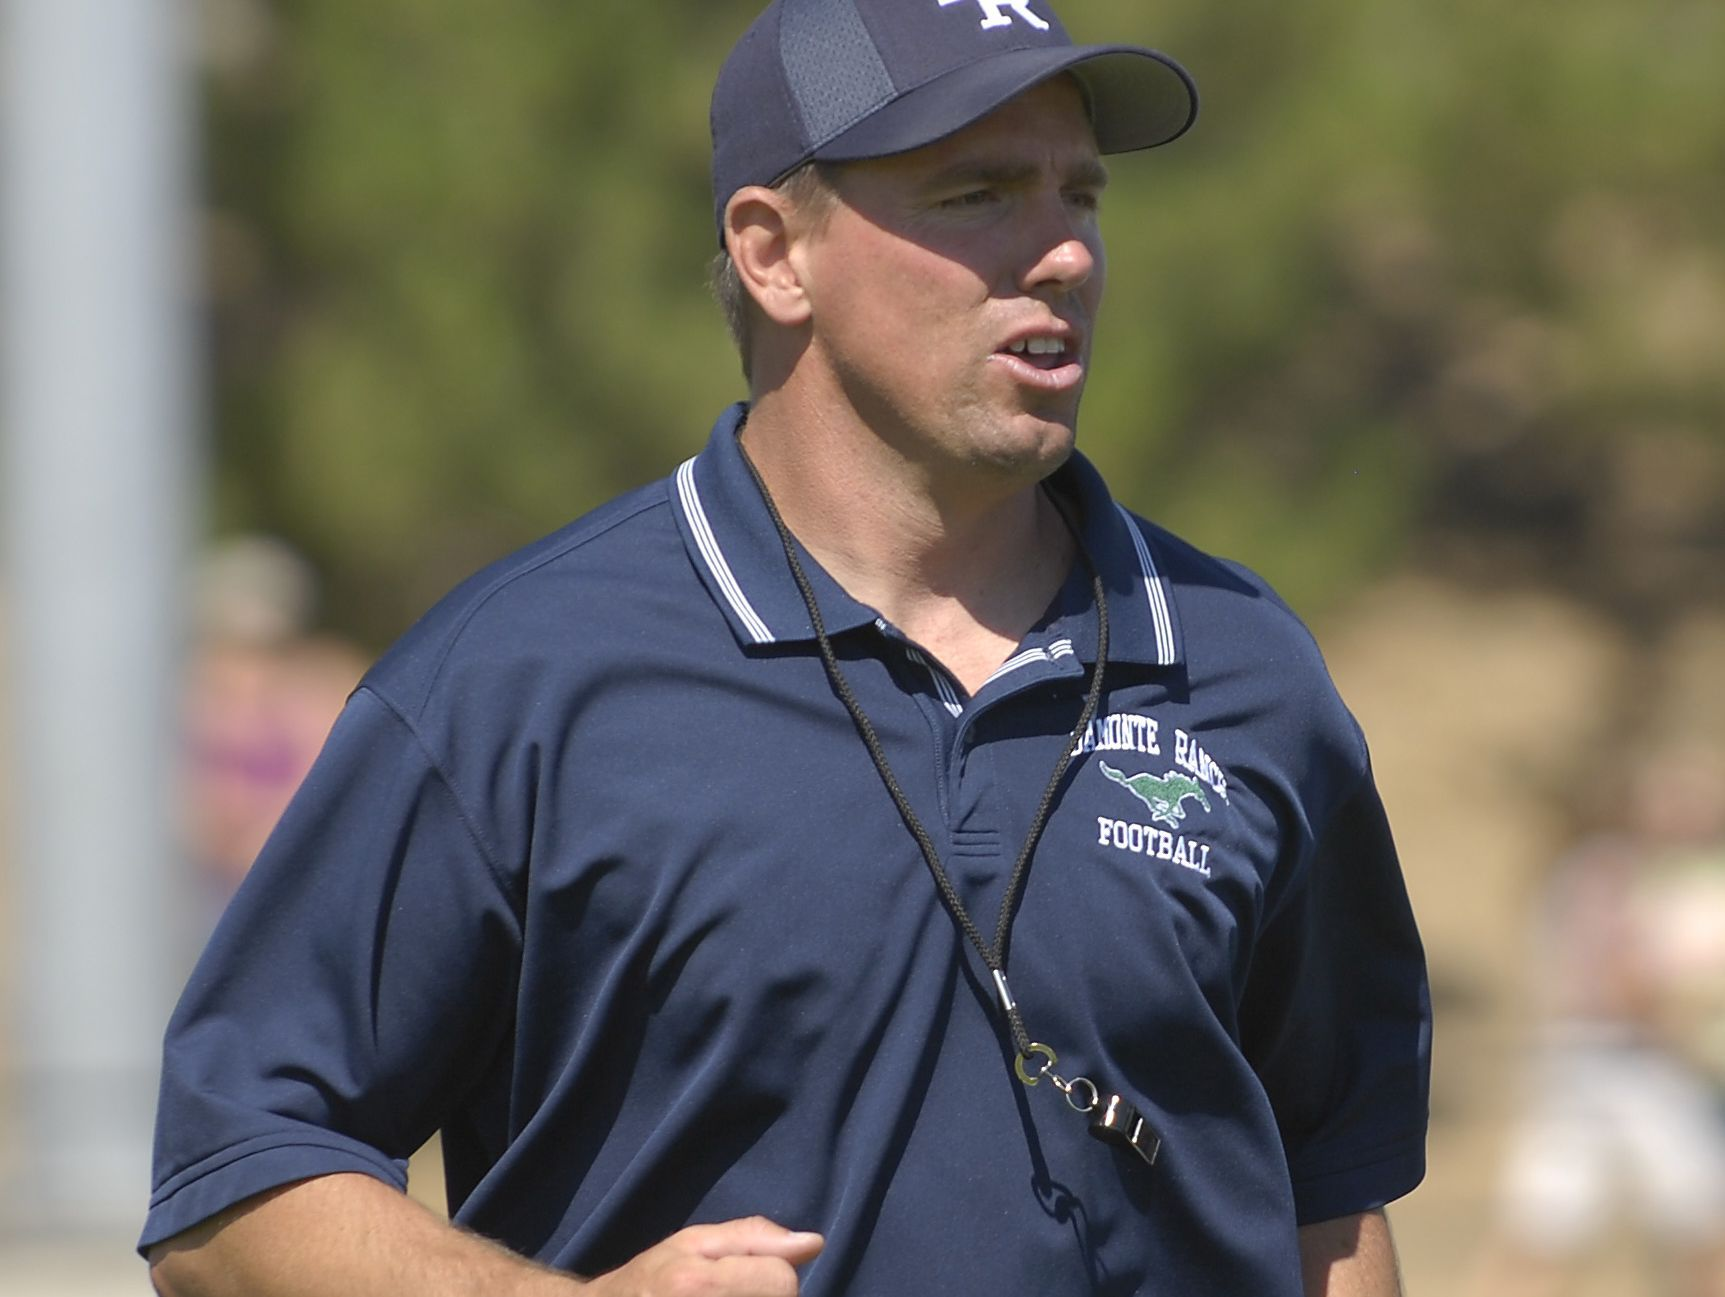 Tony Amantia is show in 2006 when he was the Damonte Ranch football coach.